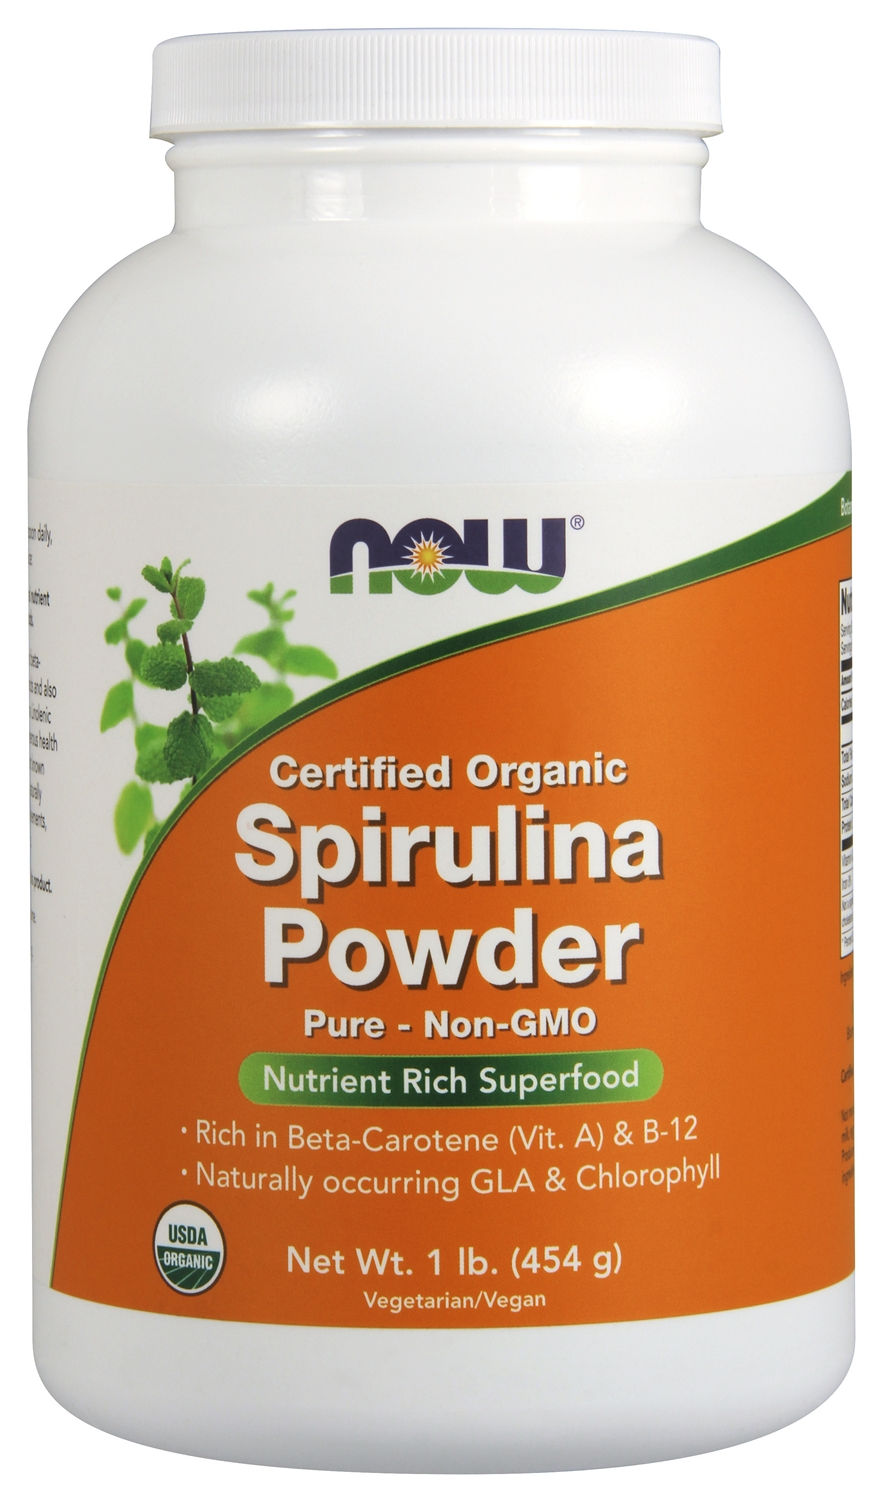 Spirulina Powder Certified Organic 1 lb (454 g) by NOW